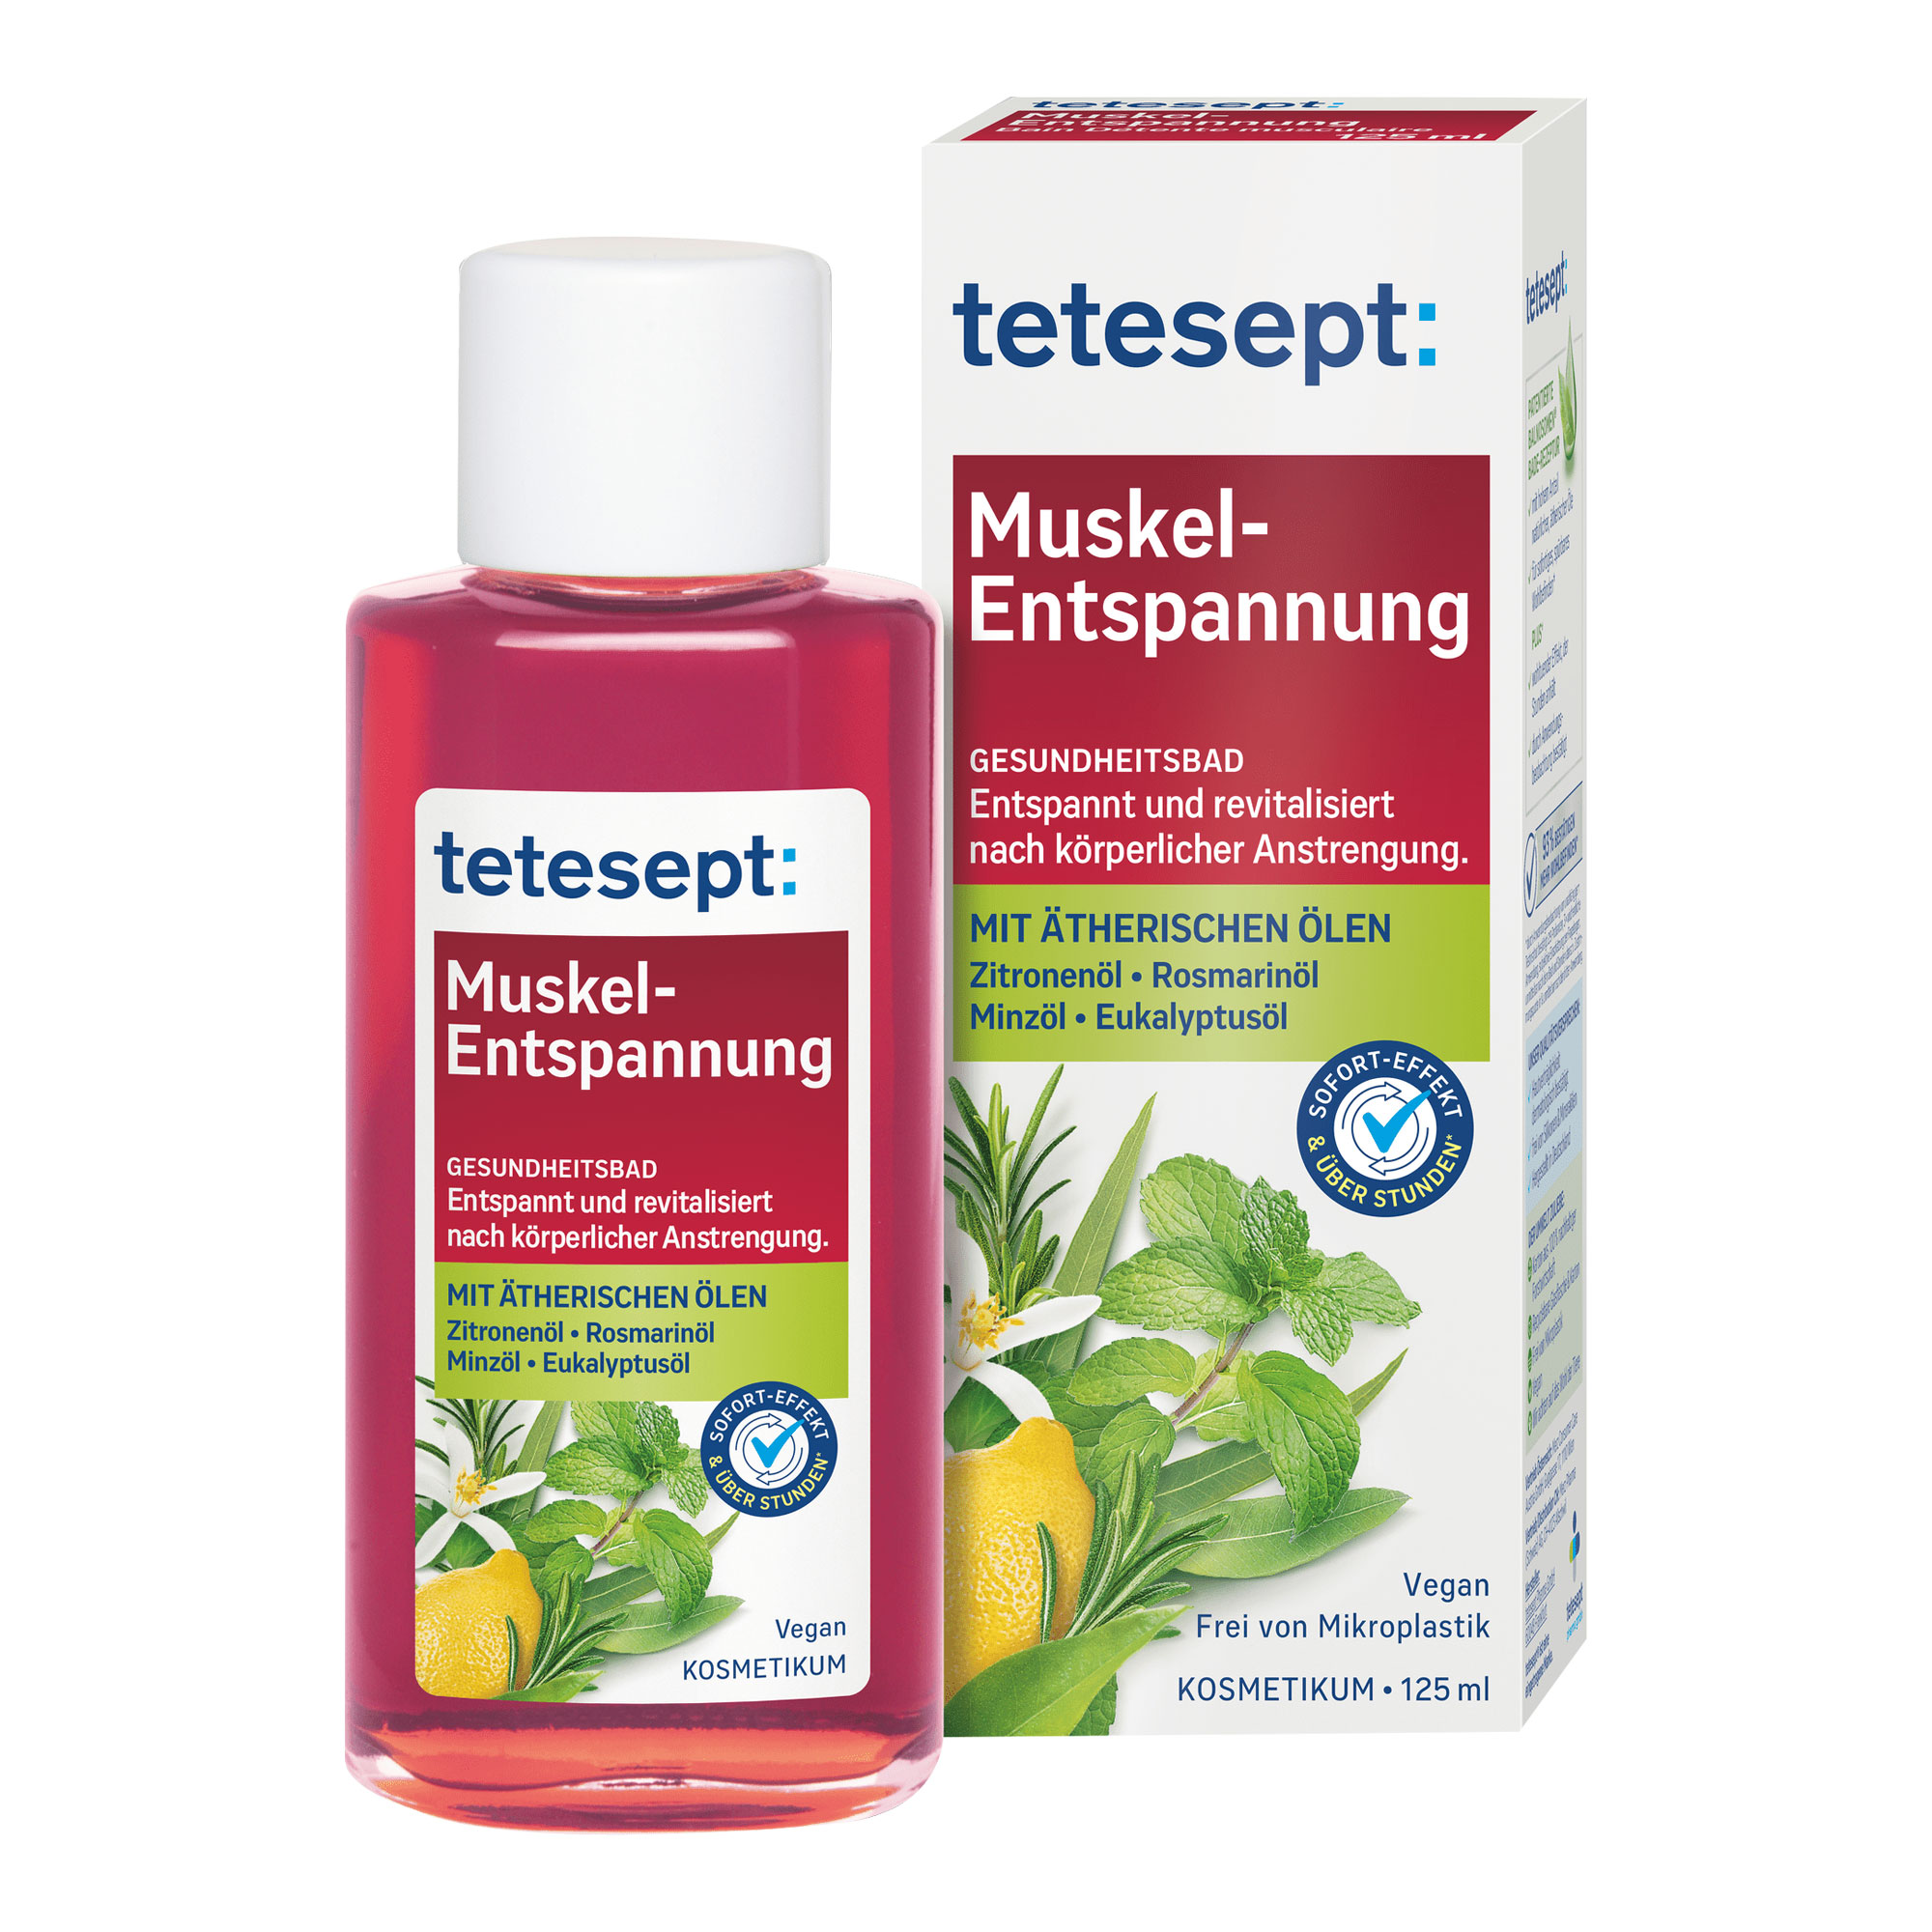 Tetesept Muskel Entspannungs Bad